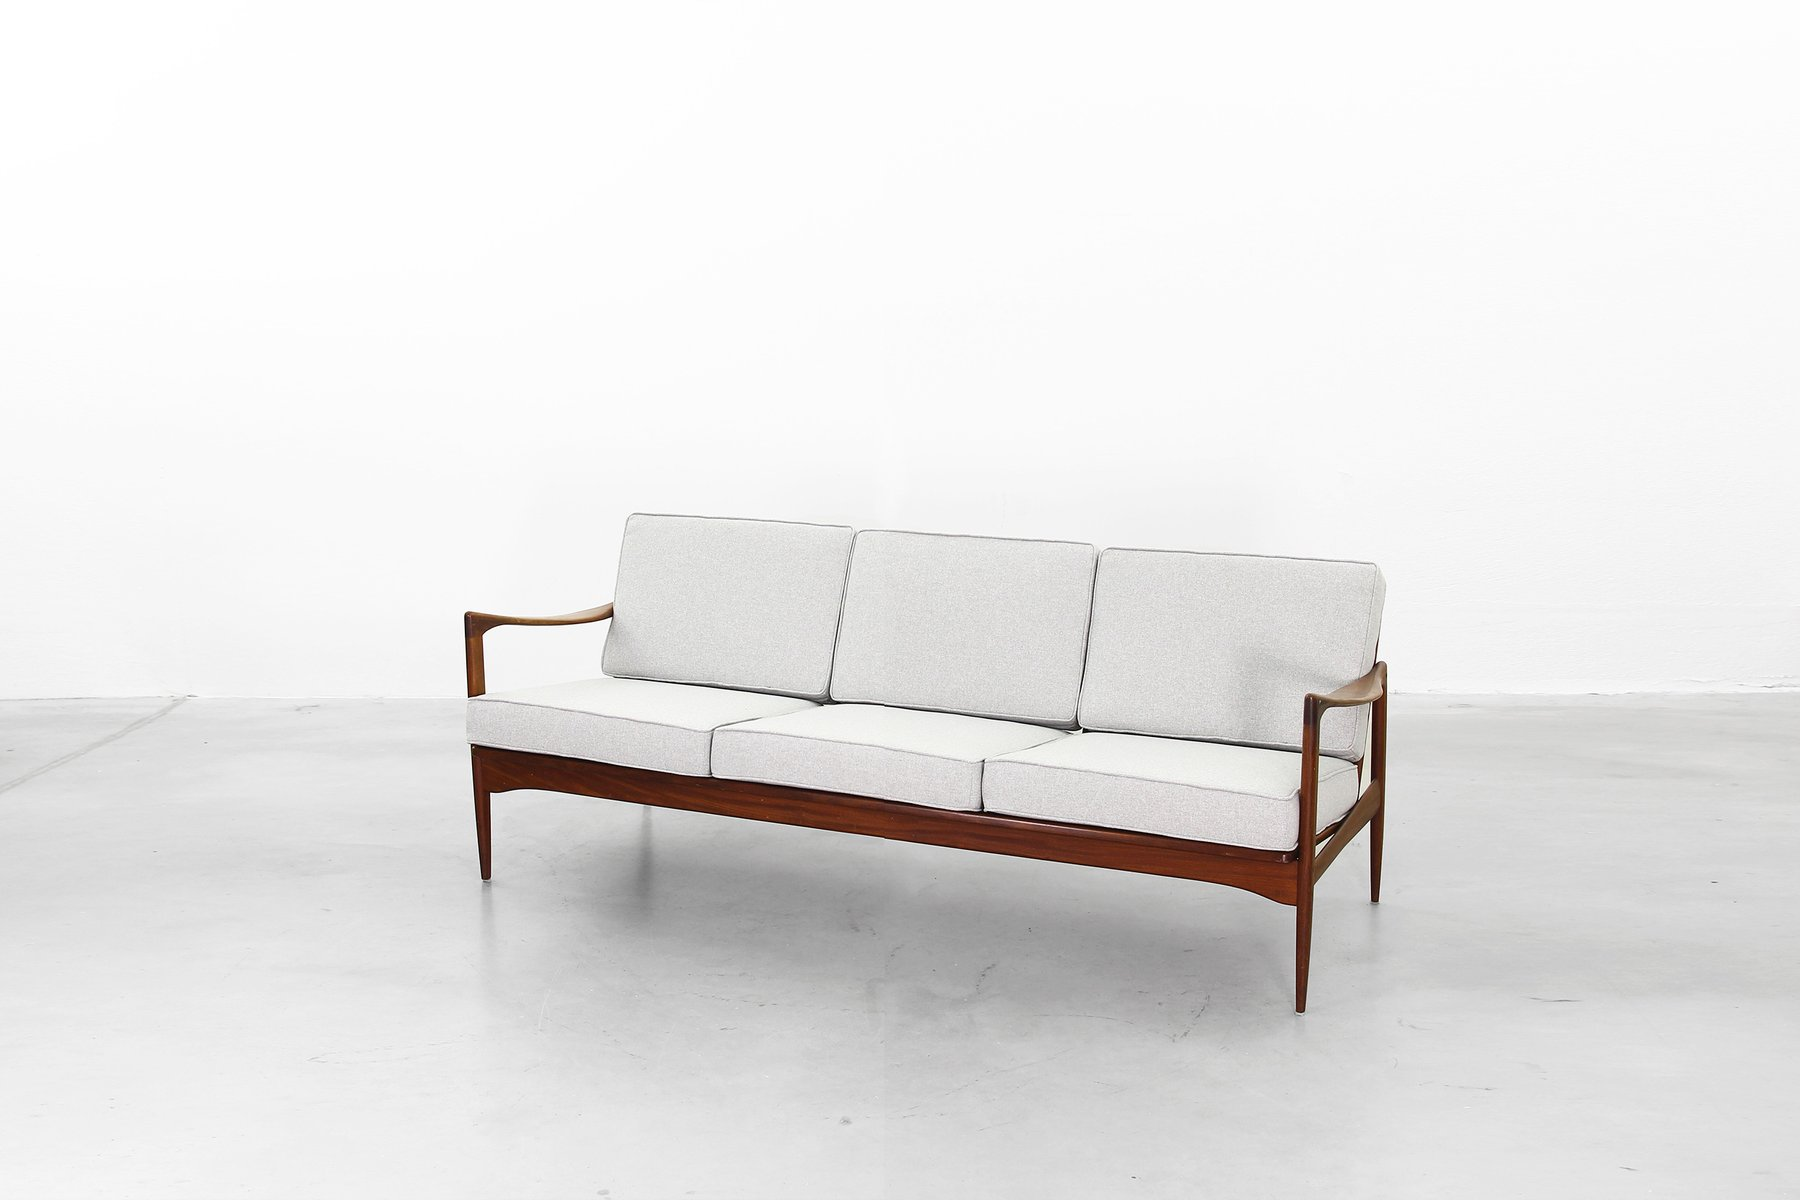 Møbler Sofa Sofa By Ib Kofod Larsen For Ope Mobler 1960s